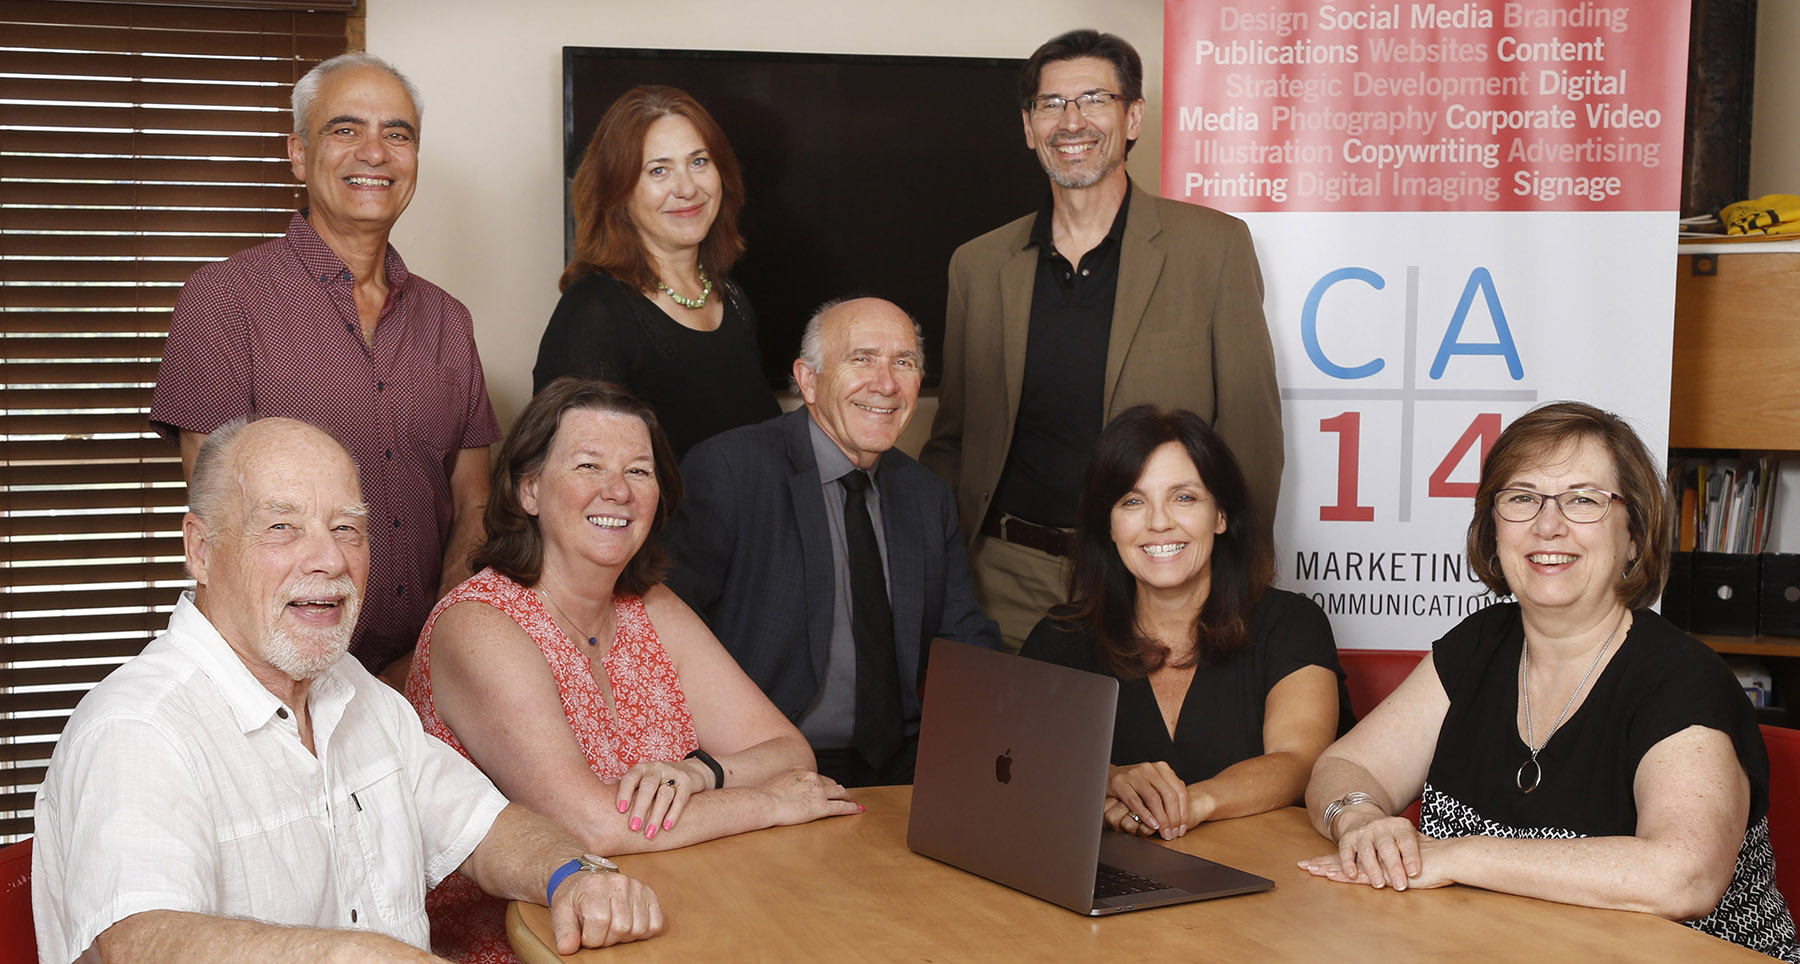 CA14 team sitting at a board table with a screen behind them on the wall and a pull up marketing banner on display.